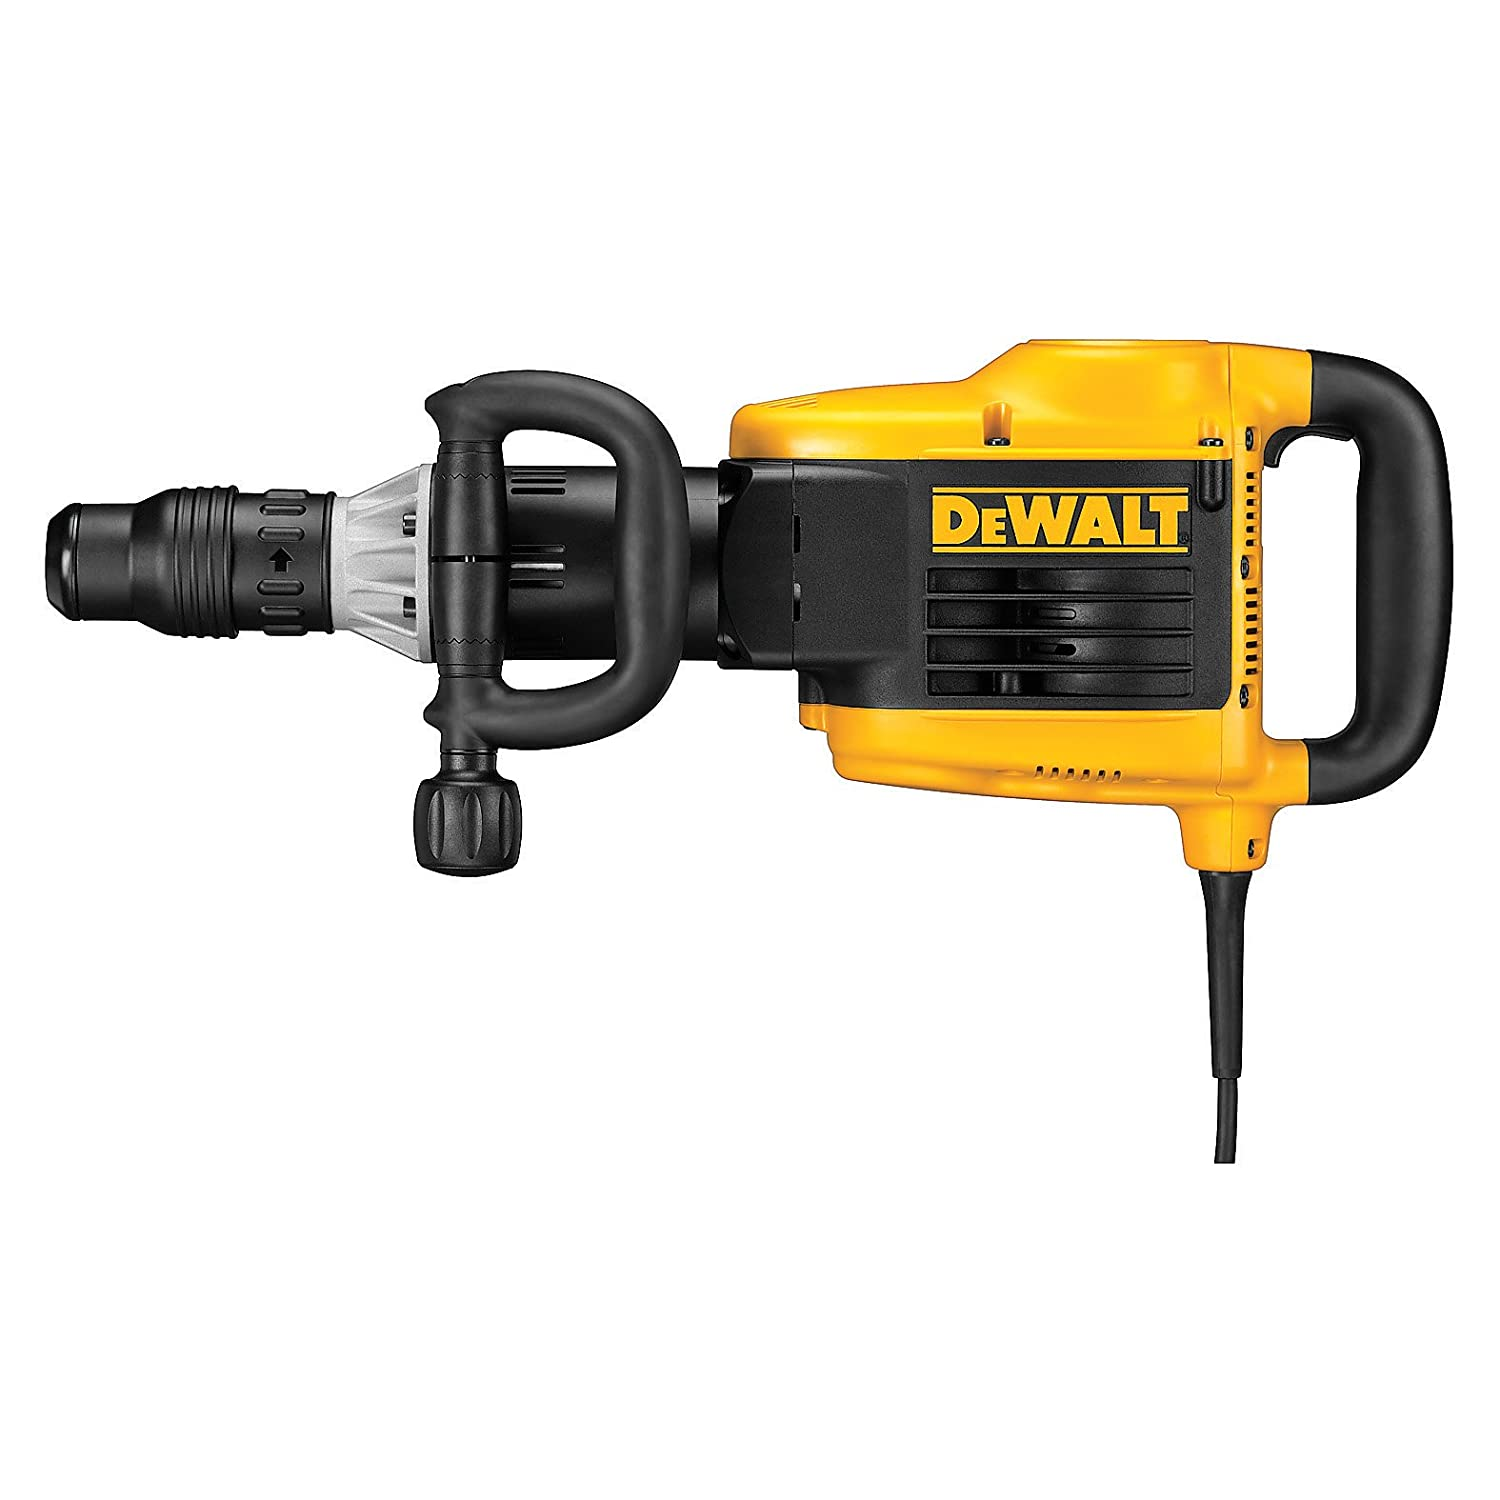 DeWALT D25899K 21 LB SDS Max Demo Hammer Review